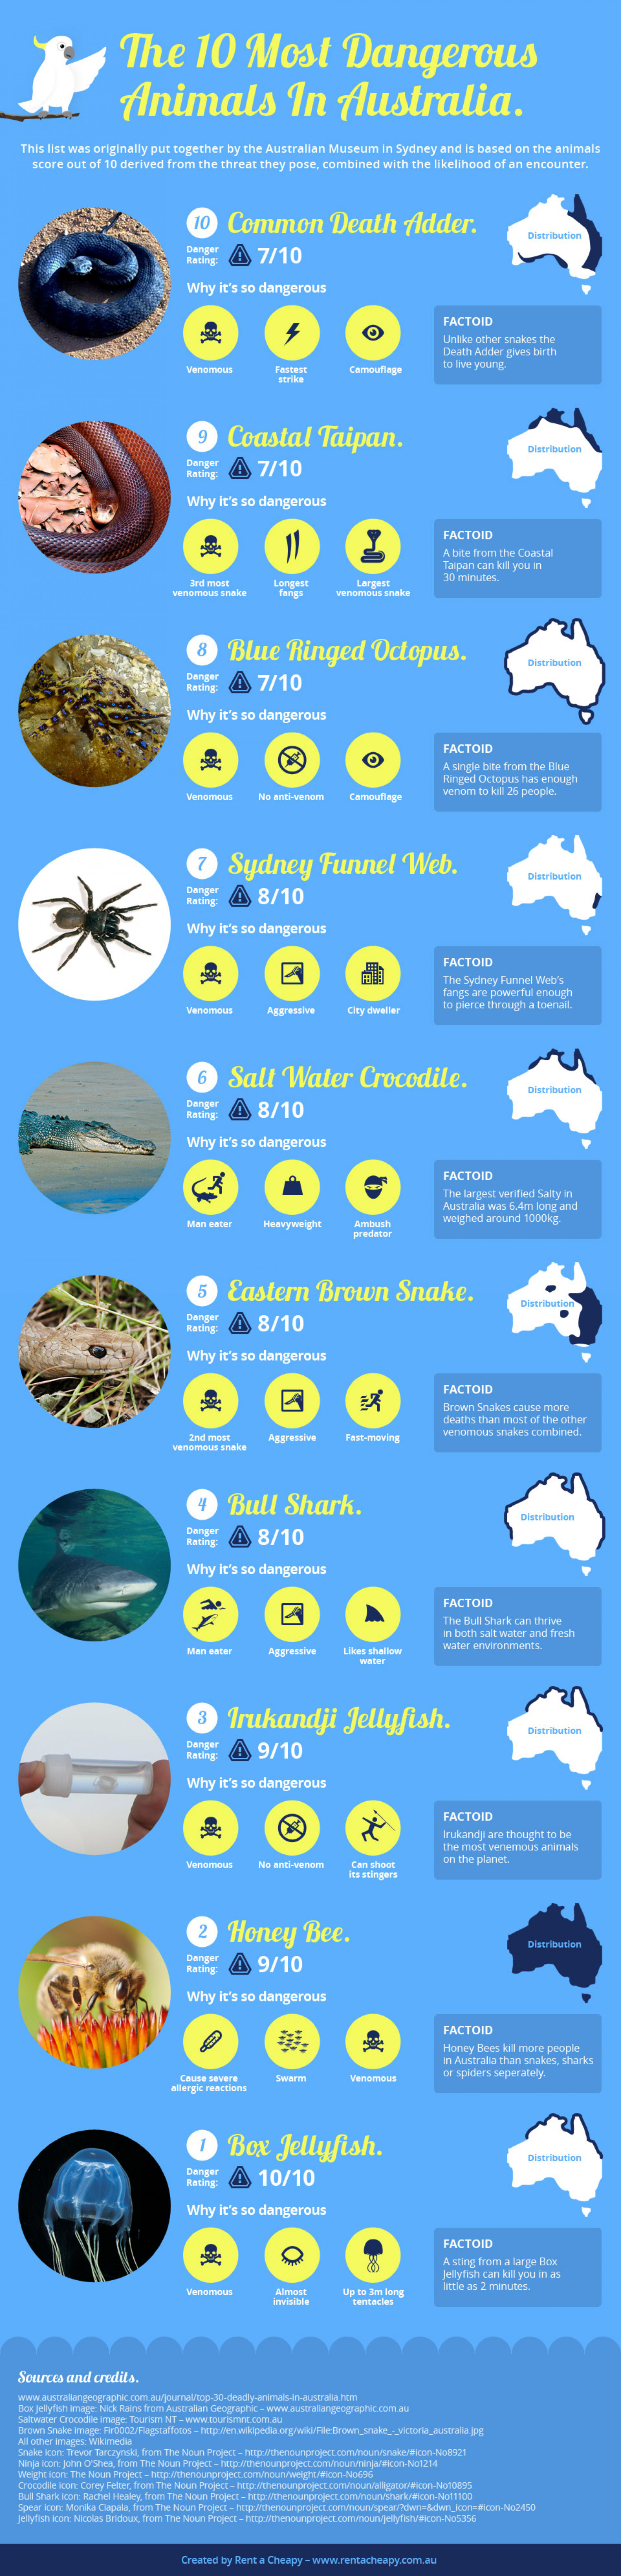 The 10 Most Dangerous Animals In Australia Infographic